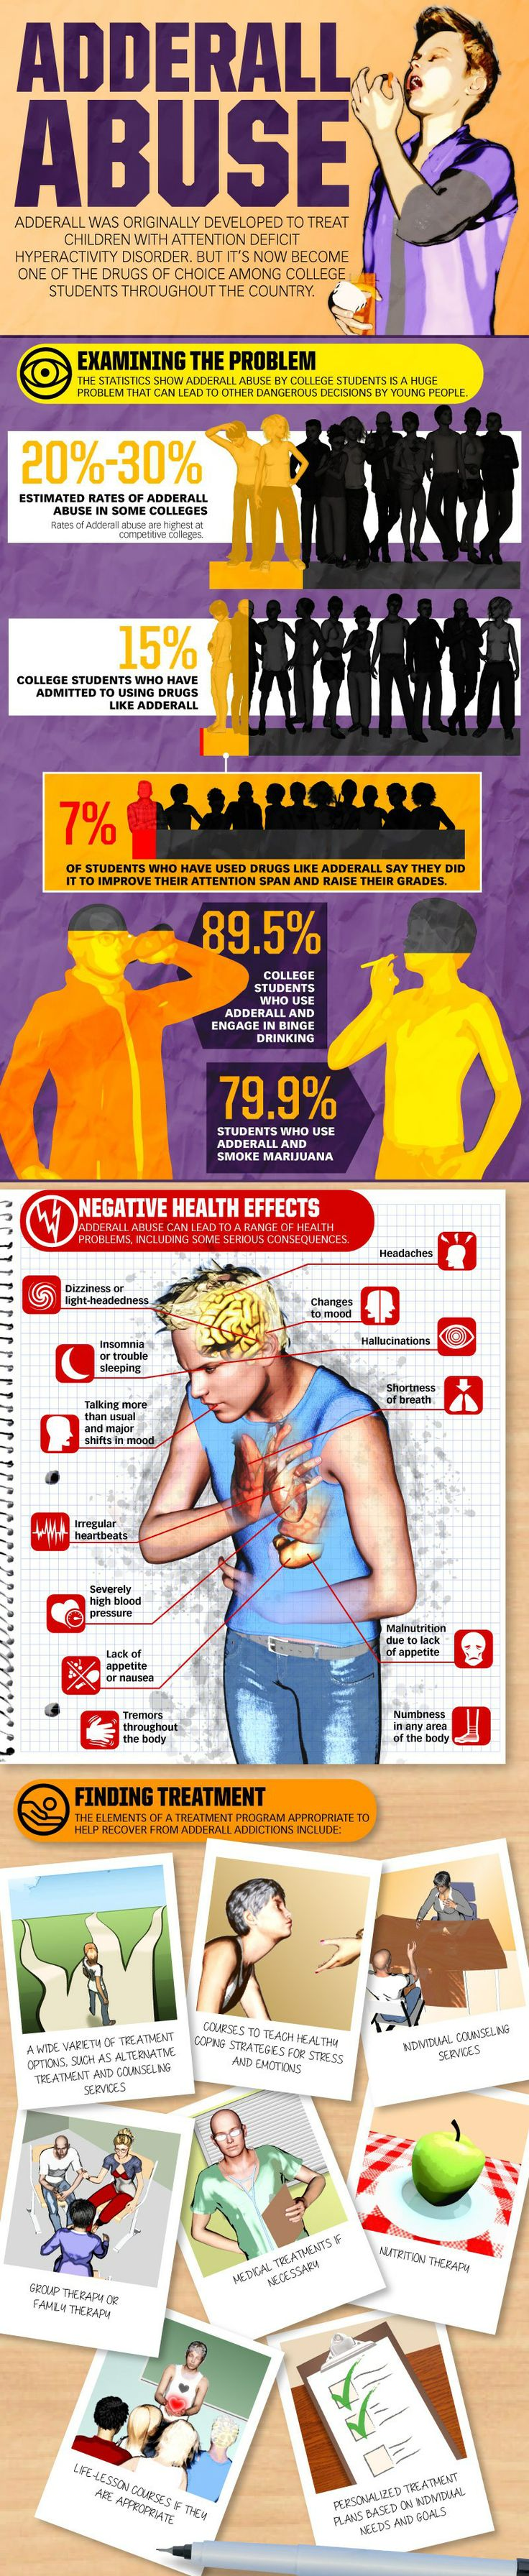 Adderall Abuse [infographic] #adderall #abuse